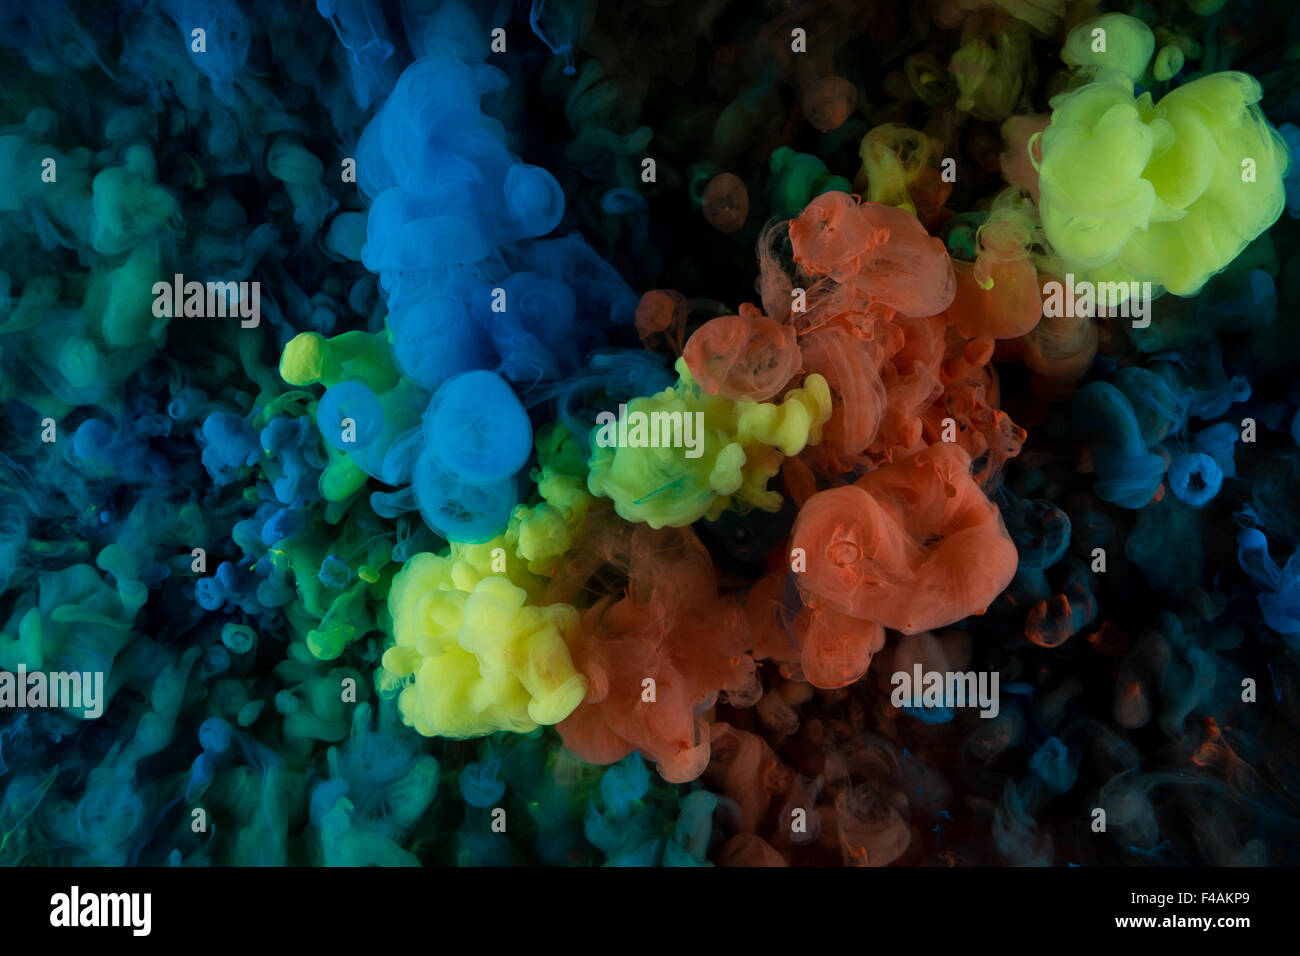 color paint in water, shot from below - Stock Image